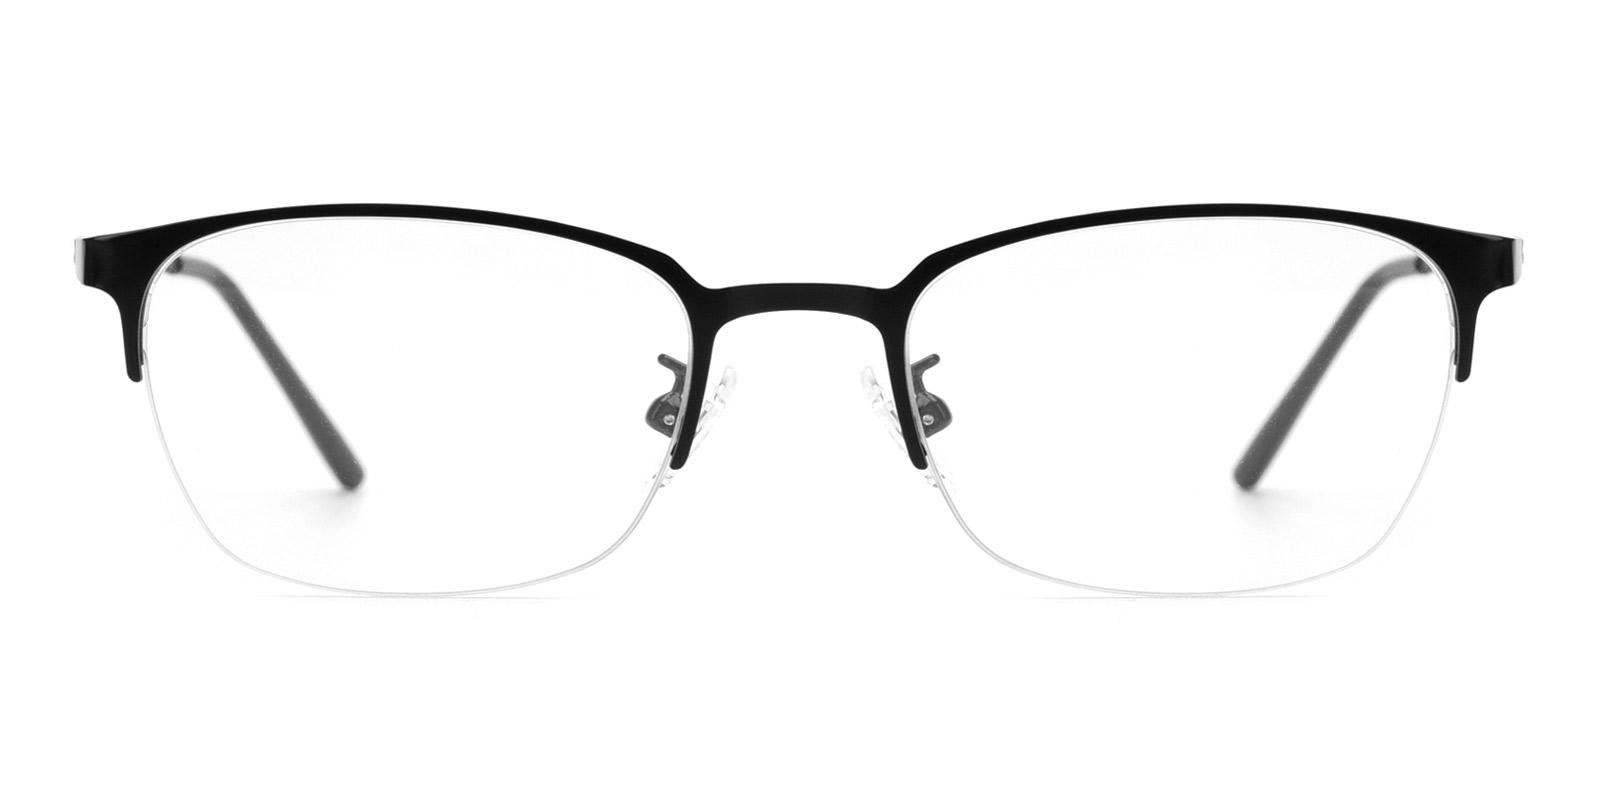 Wavain-Black-Rectangle-Metal-Eyeglasses-additional2